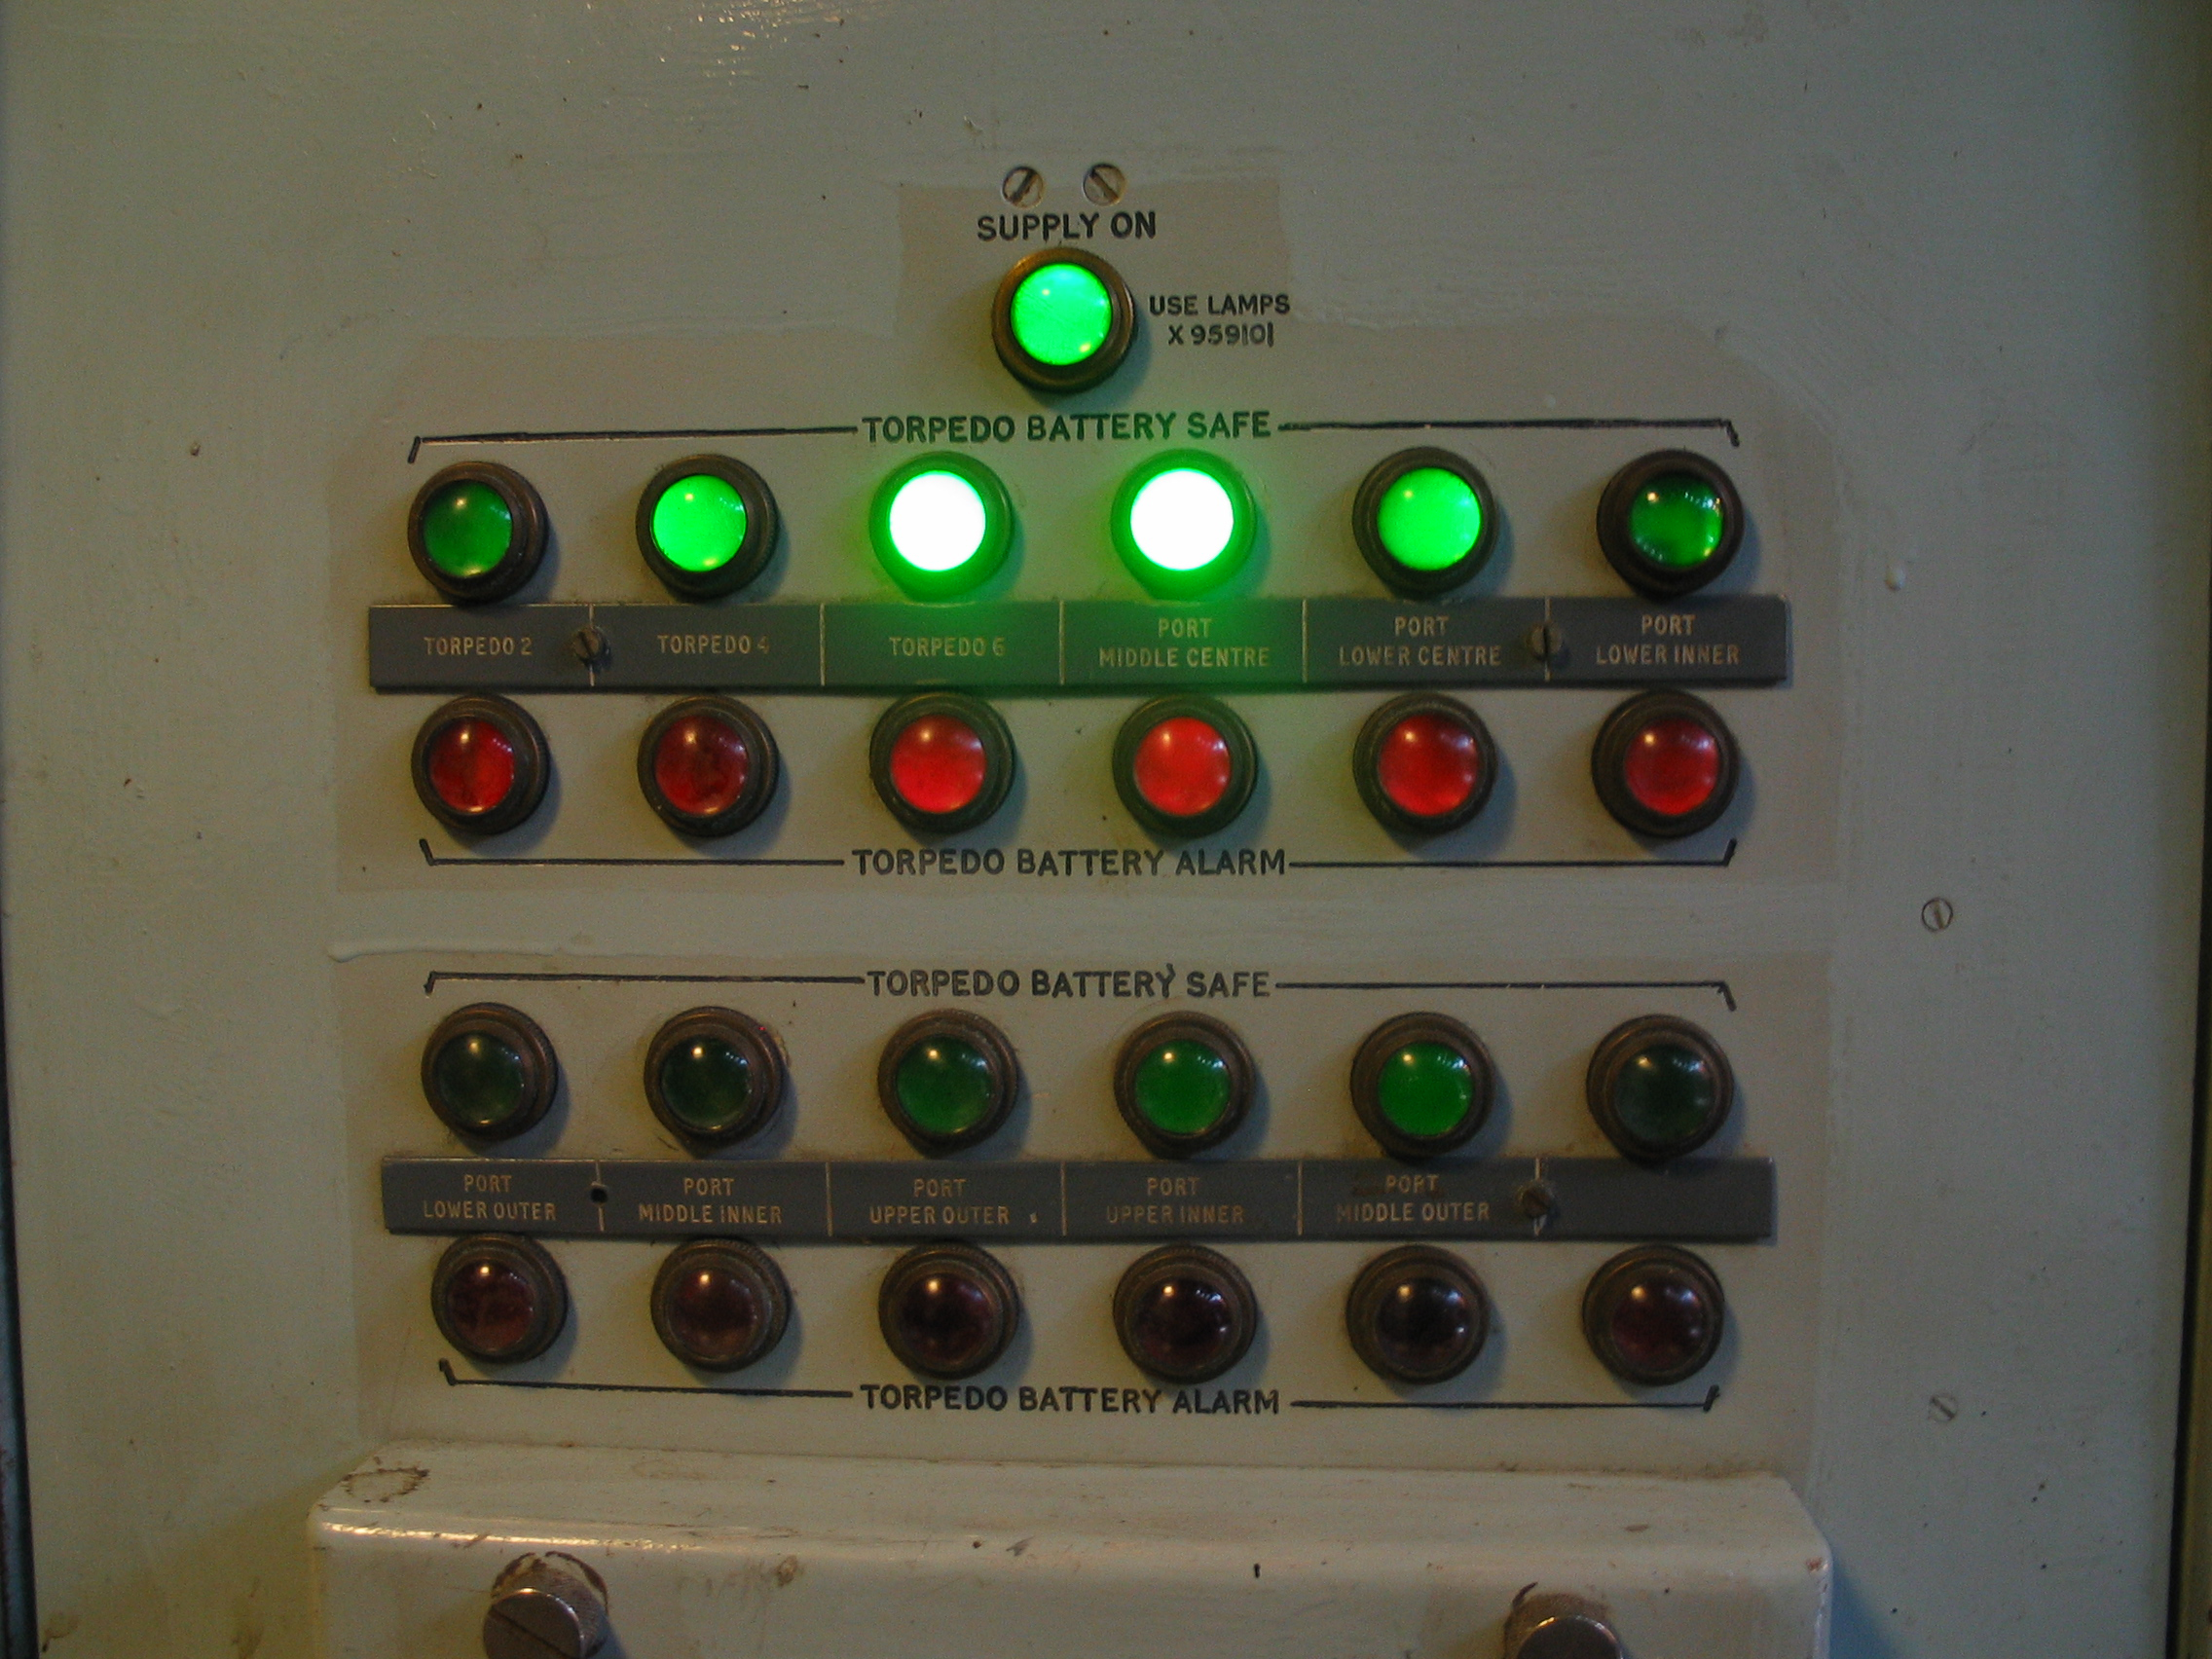 iain torpedo battery save lights panel controls submarine green